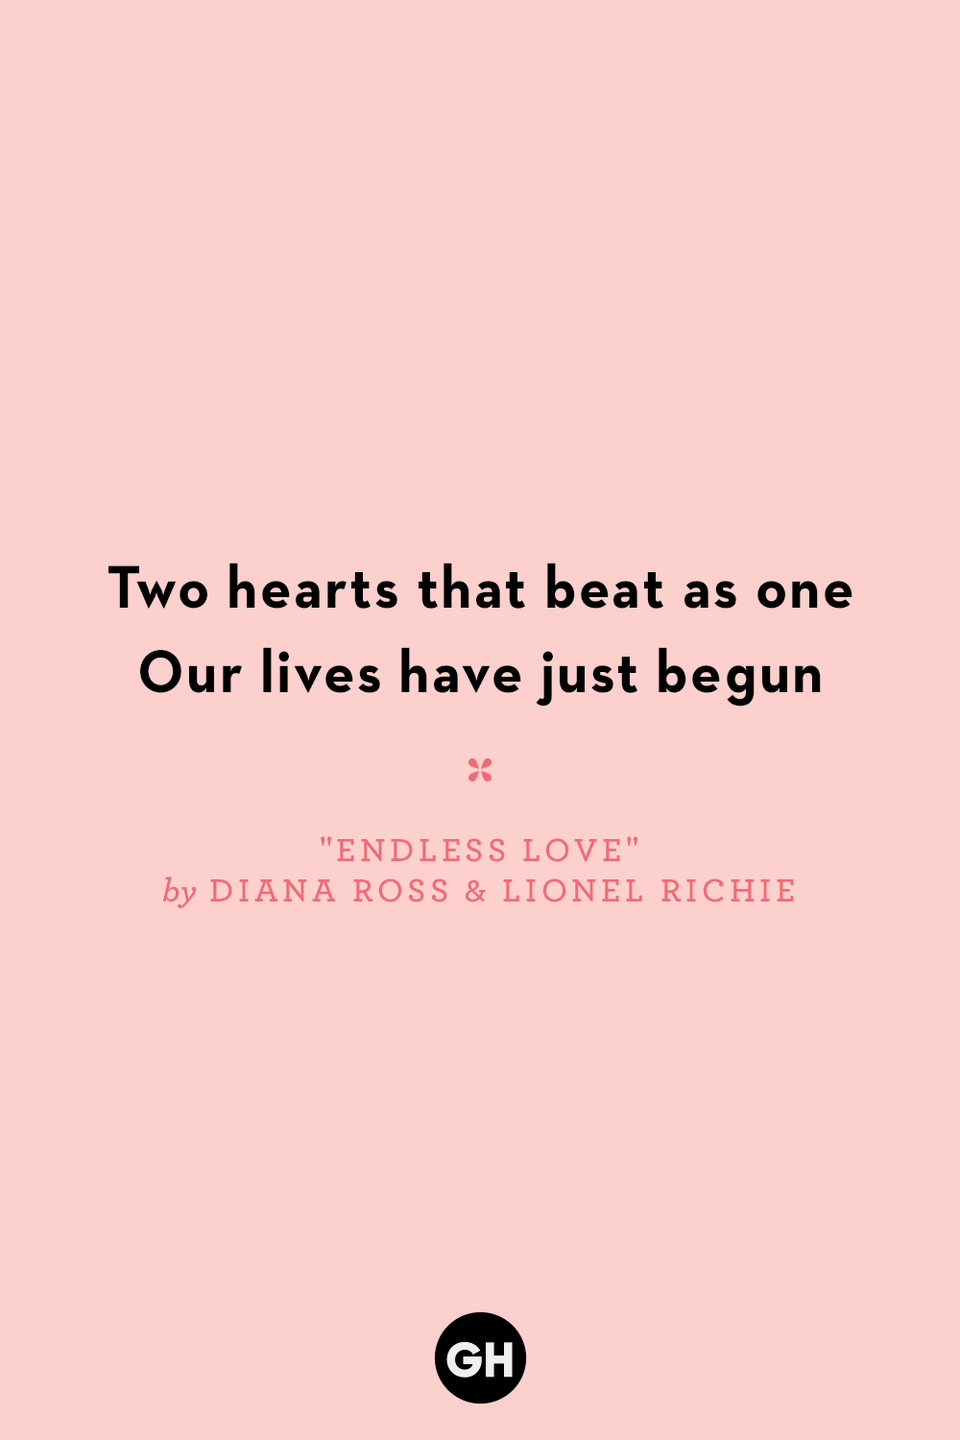 <p>Two hearts that beat as one</p><p>Our lives have just begun</p>